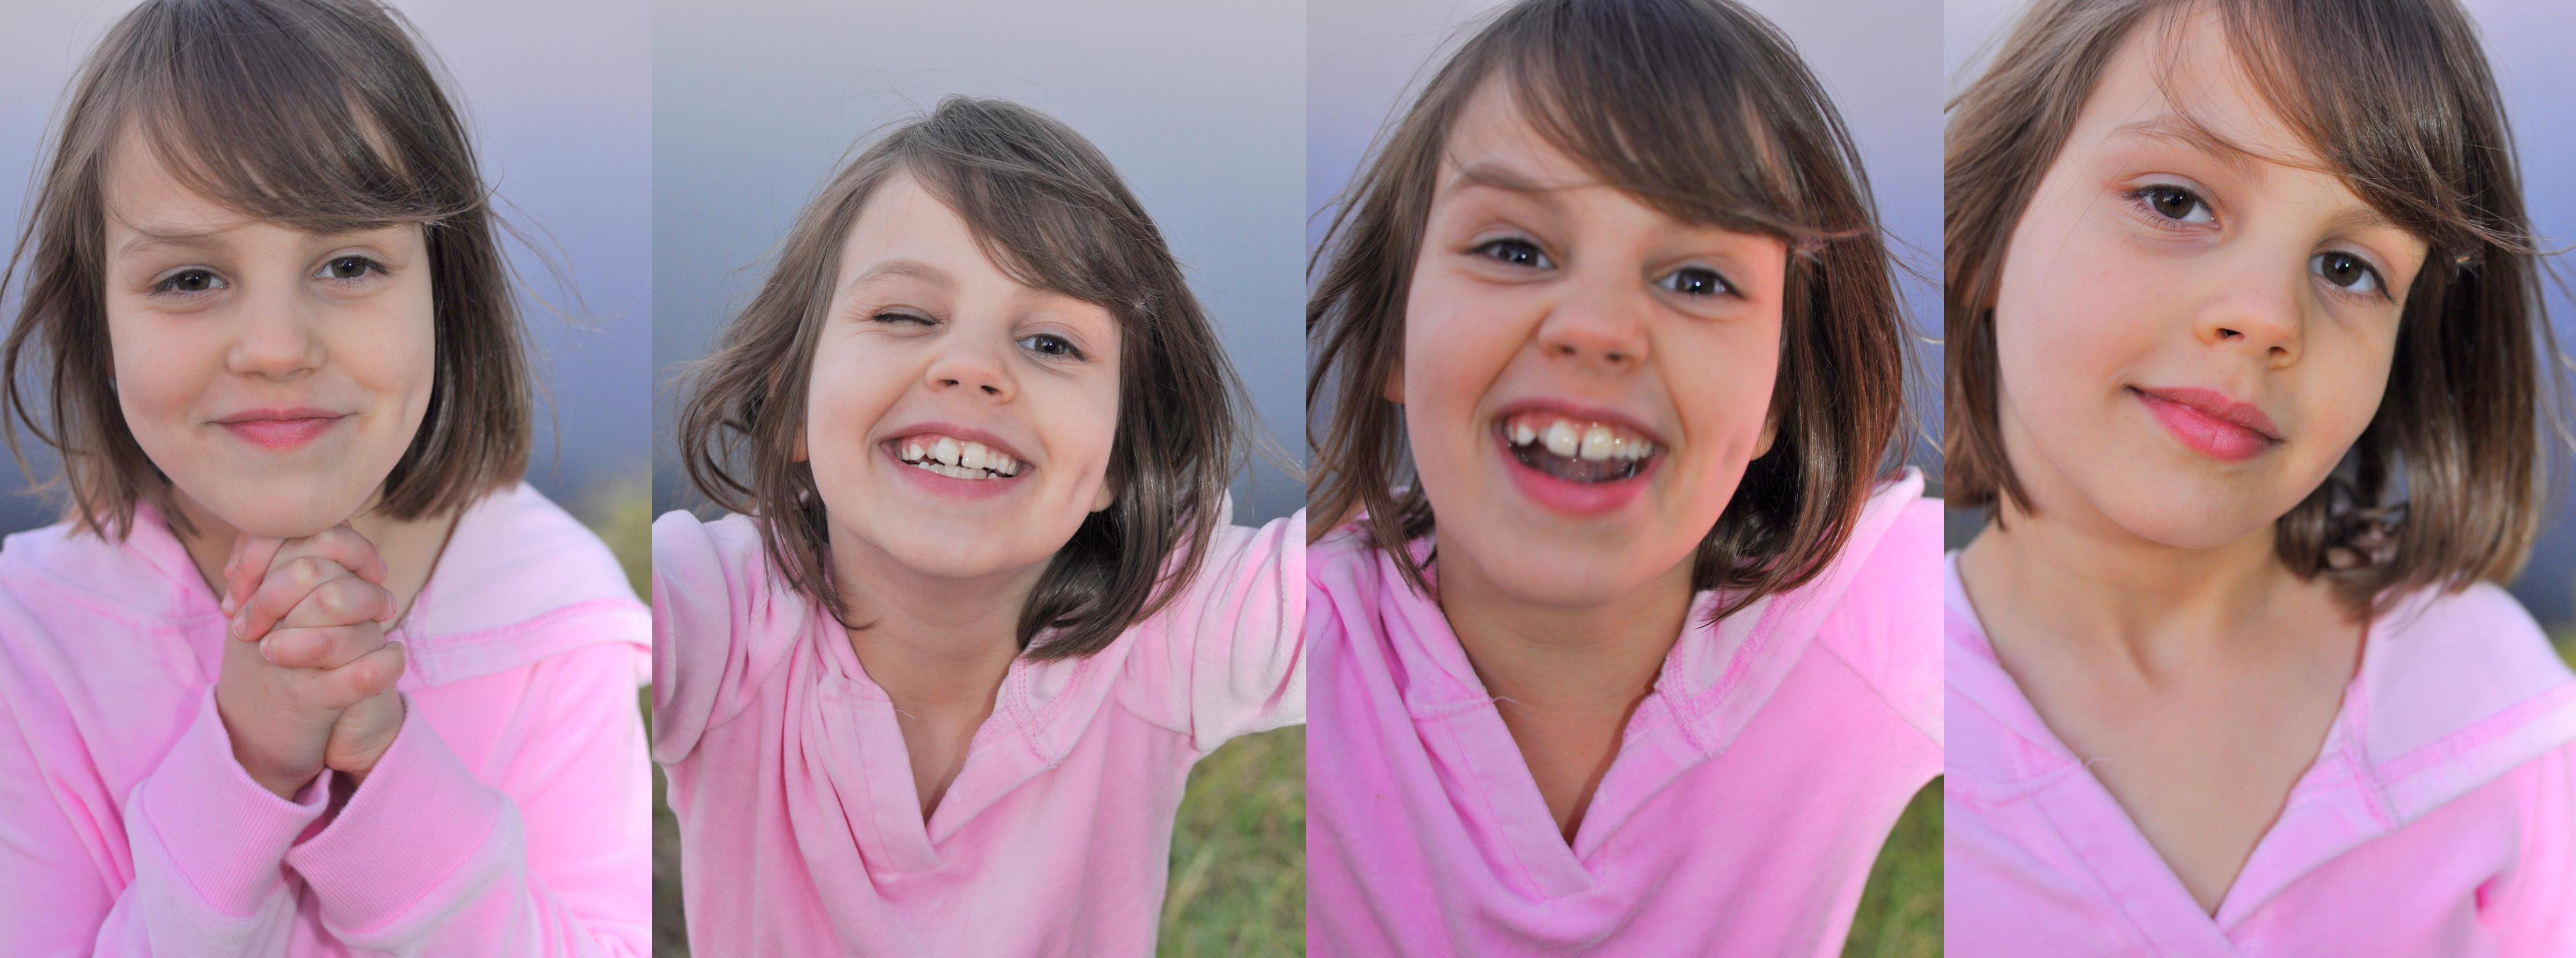 taking photographs of kids: how to get kids to smile for the camera